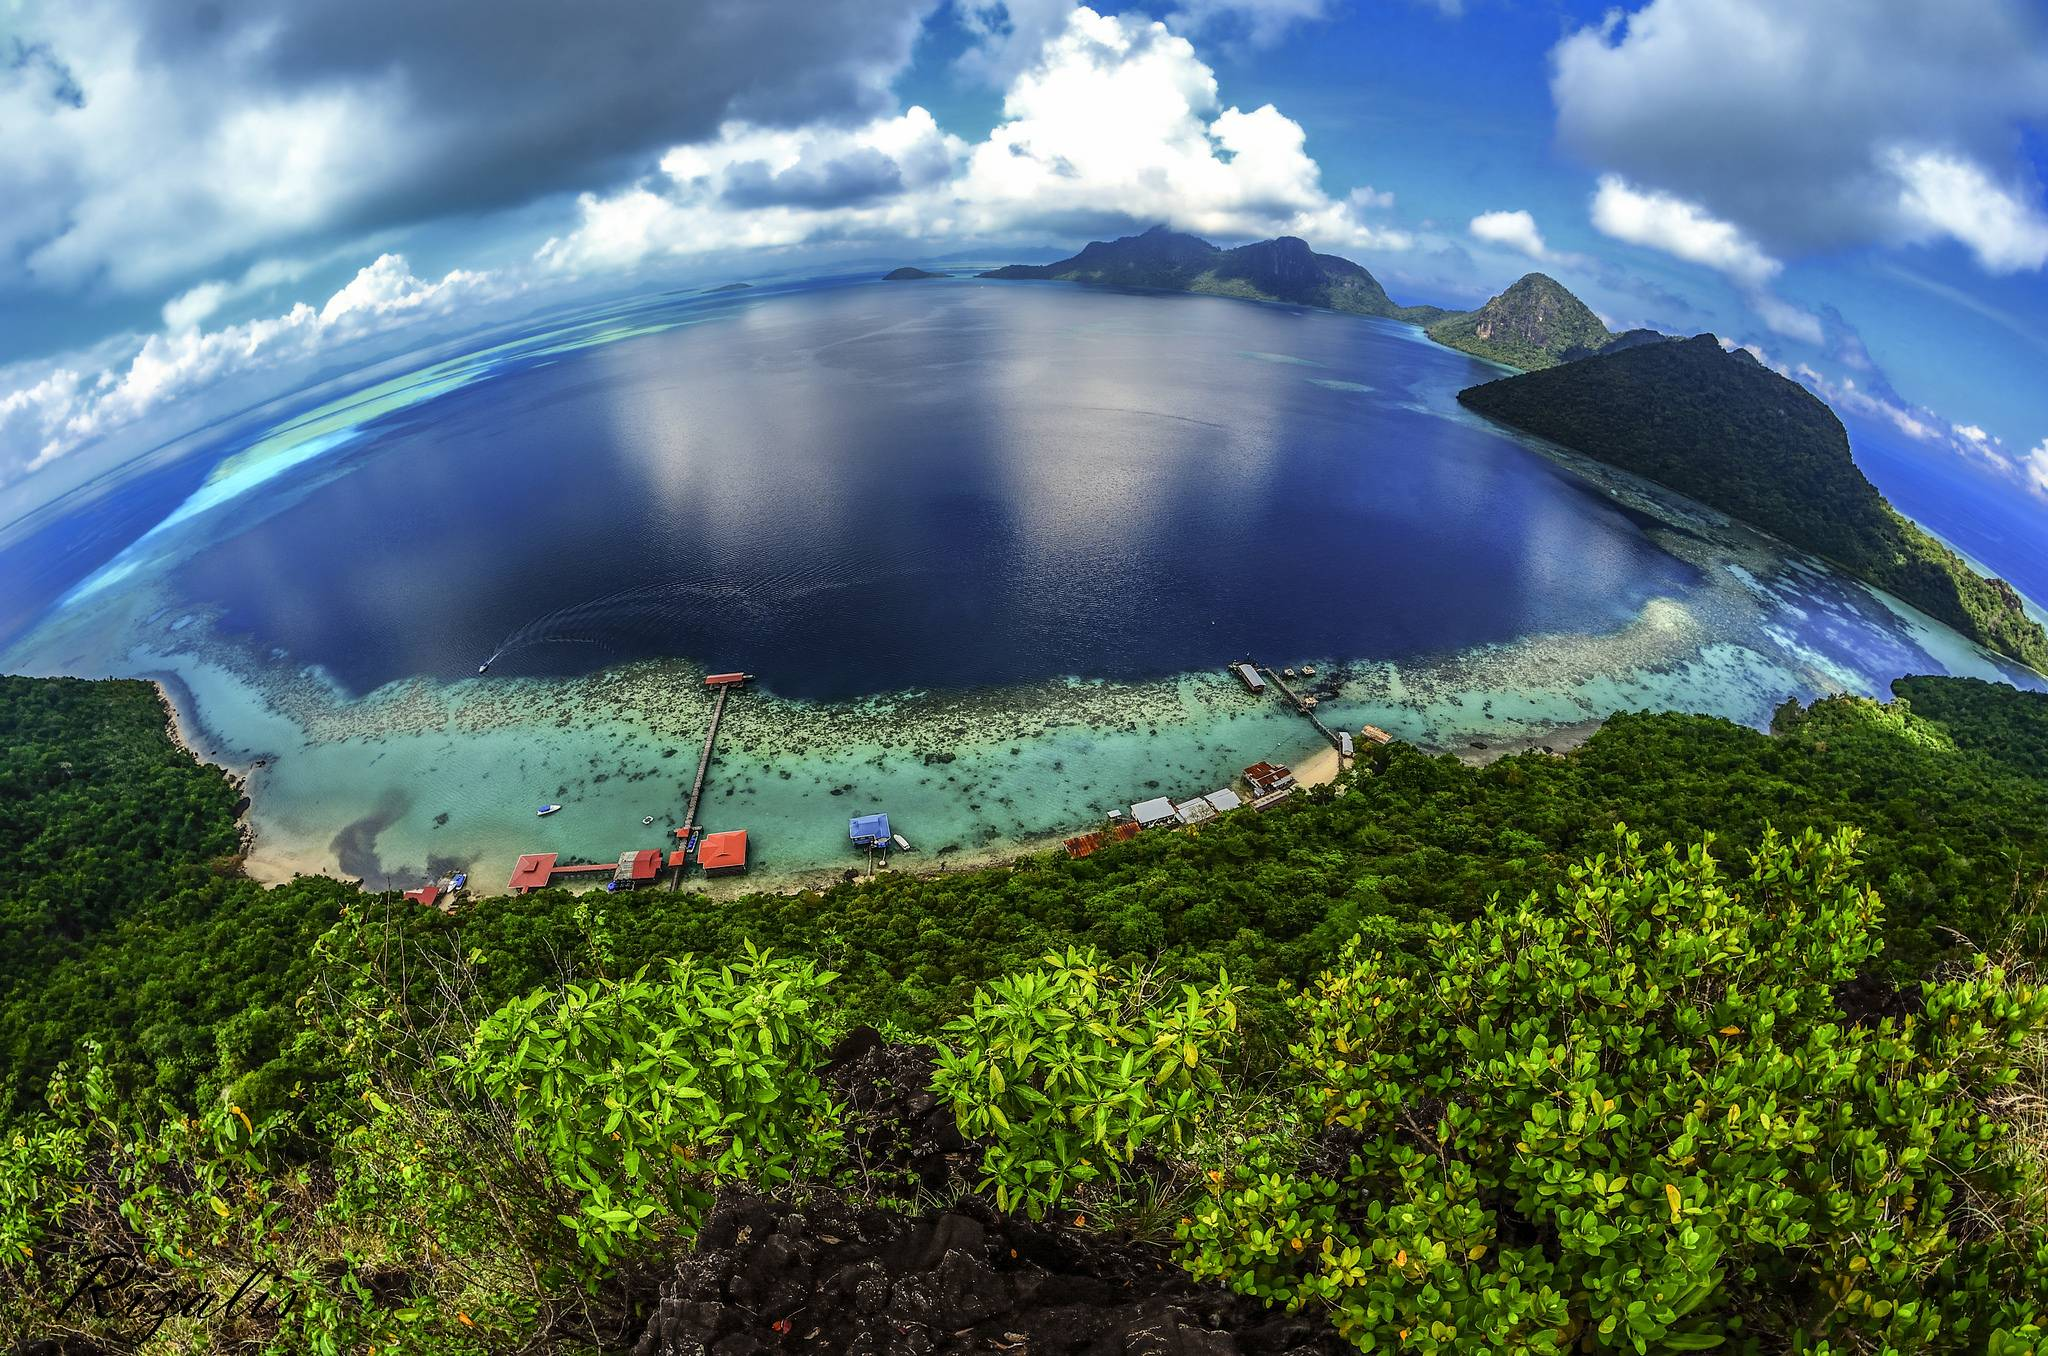 The to-die-for view at the peak of the Bohey Dulang island